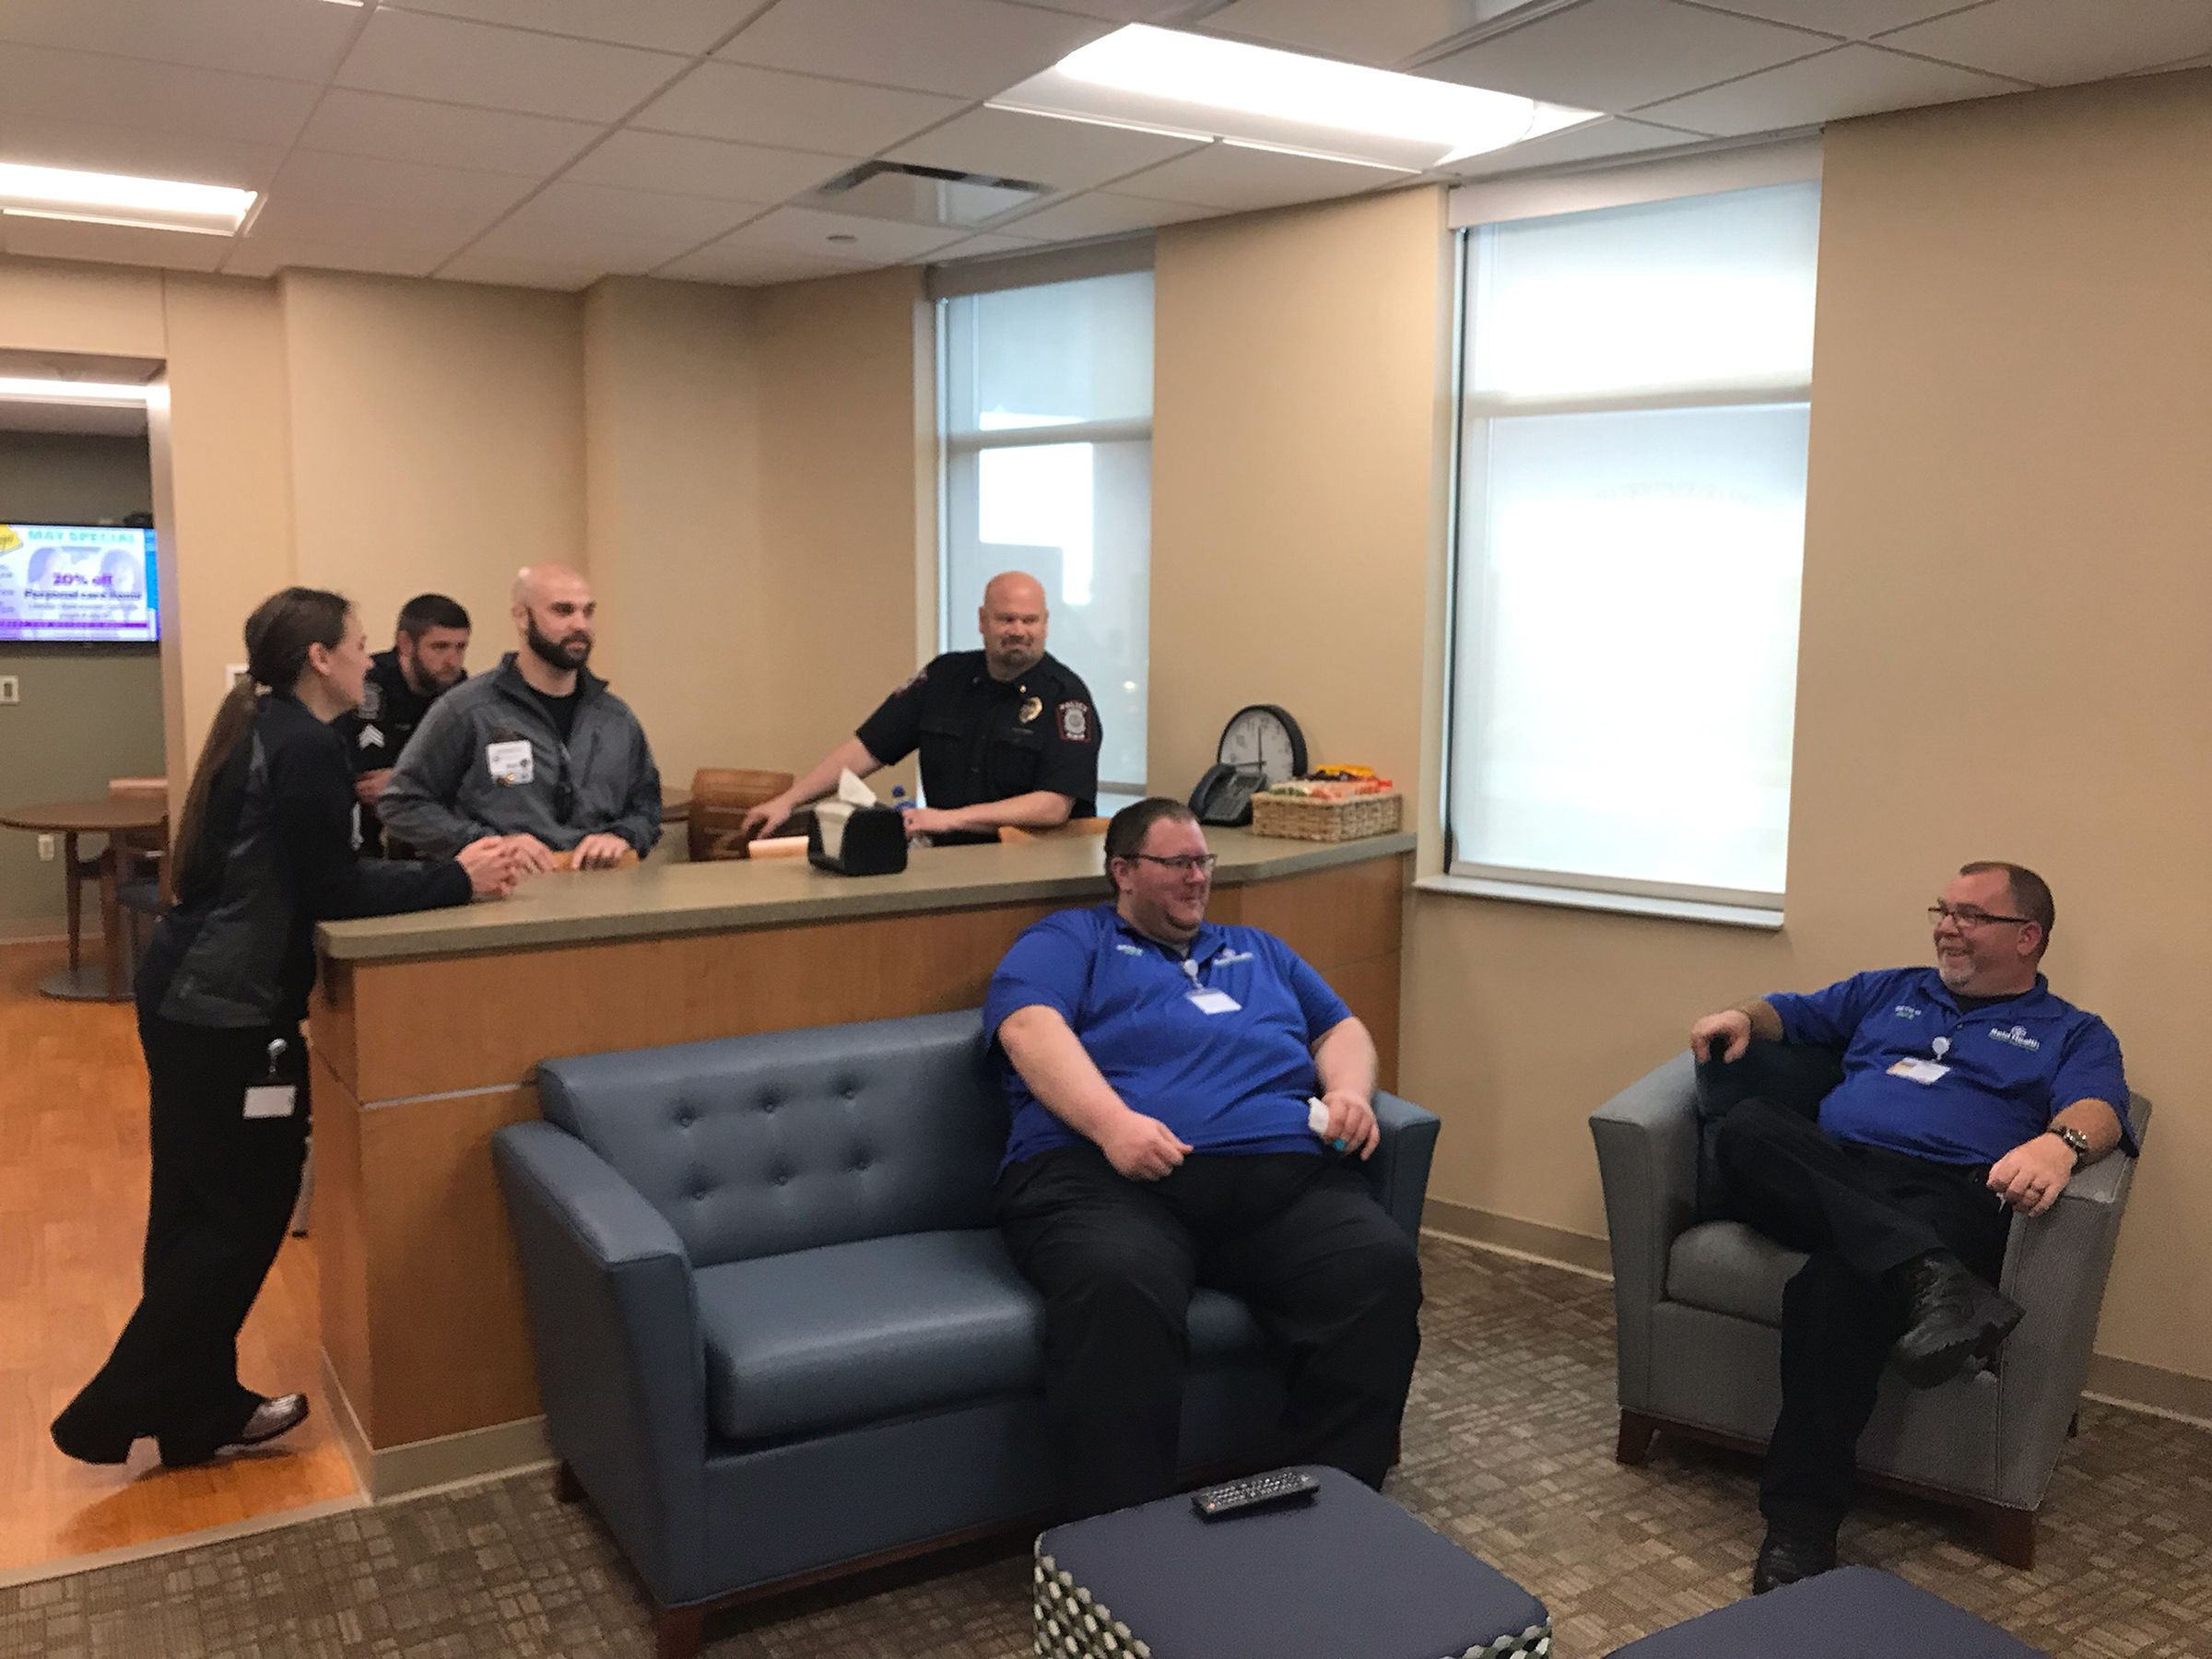 The expanded space allows different EMS teams, firefighters and law enforcement to interact and get to know one another better.